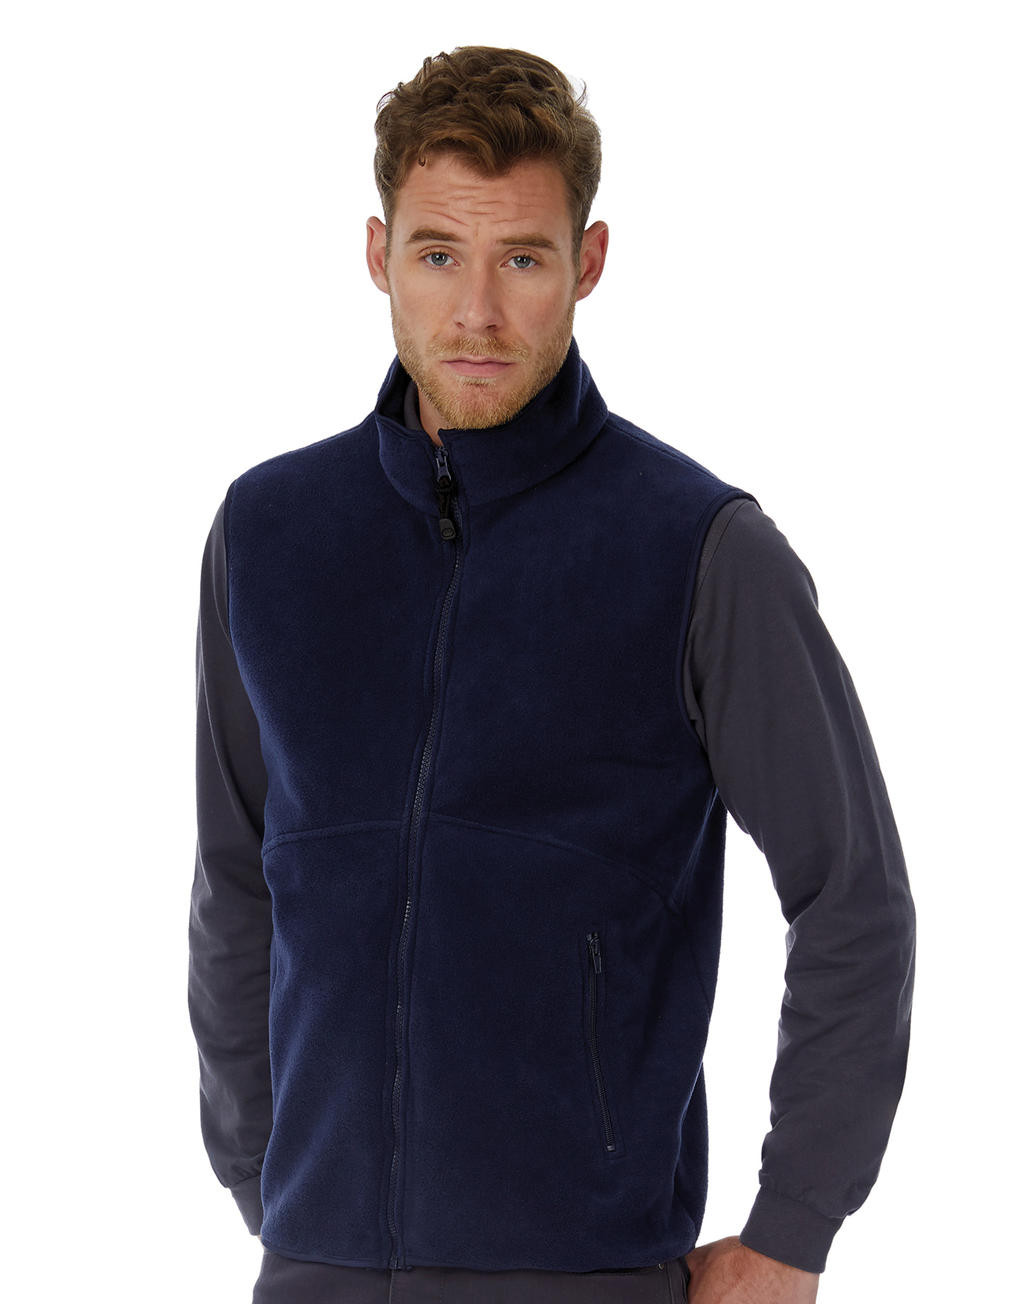 B&C Traveller+ Bodywarmer Fleece